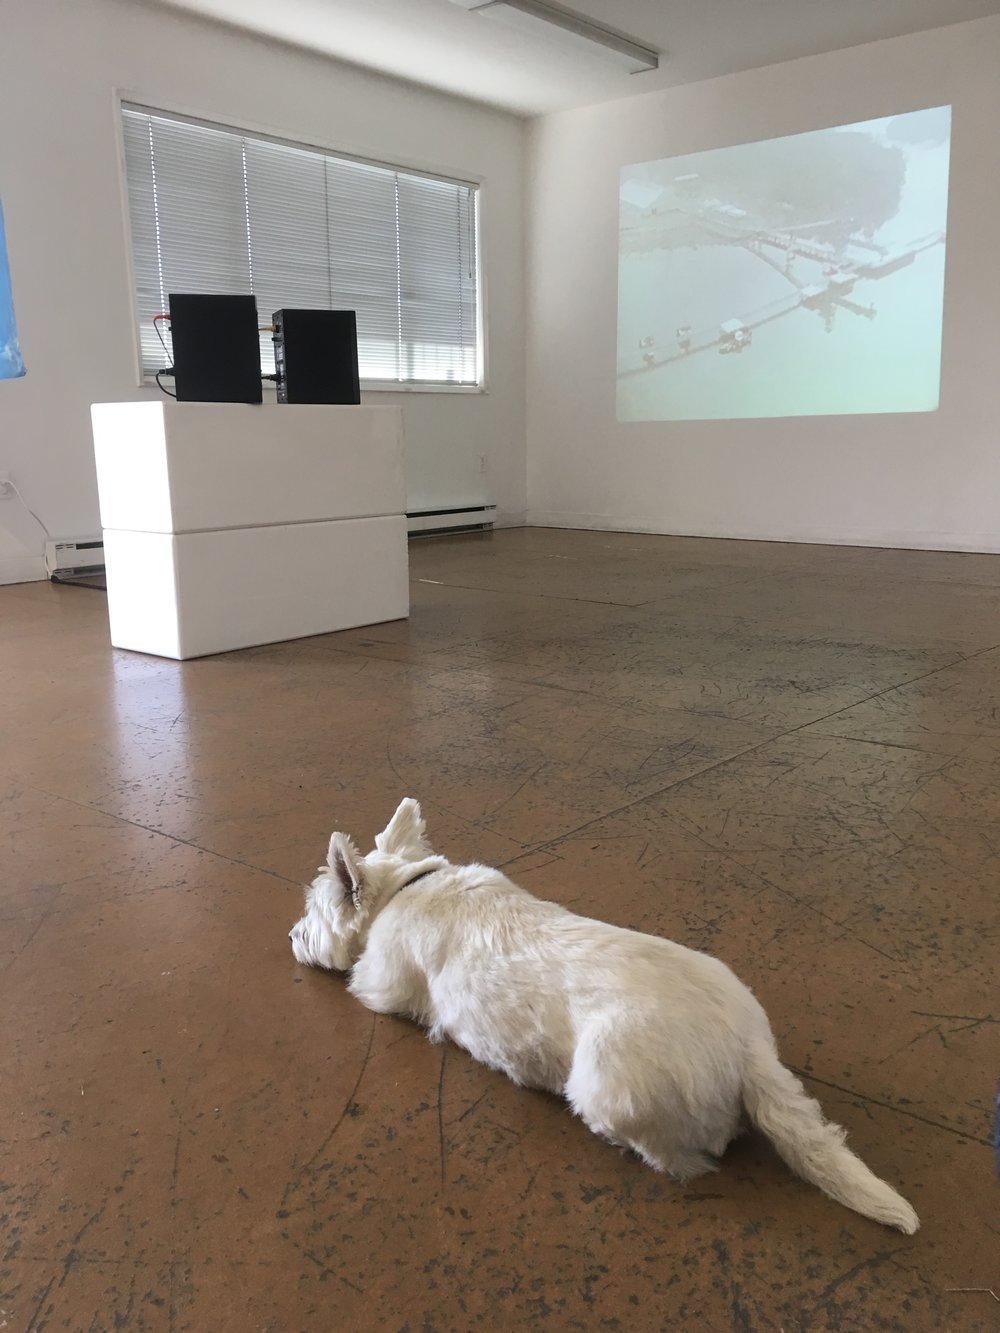 Enzo the westie is the best gallery sitter!